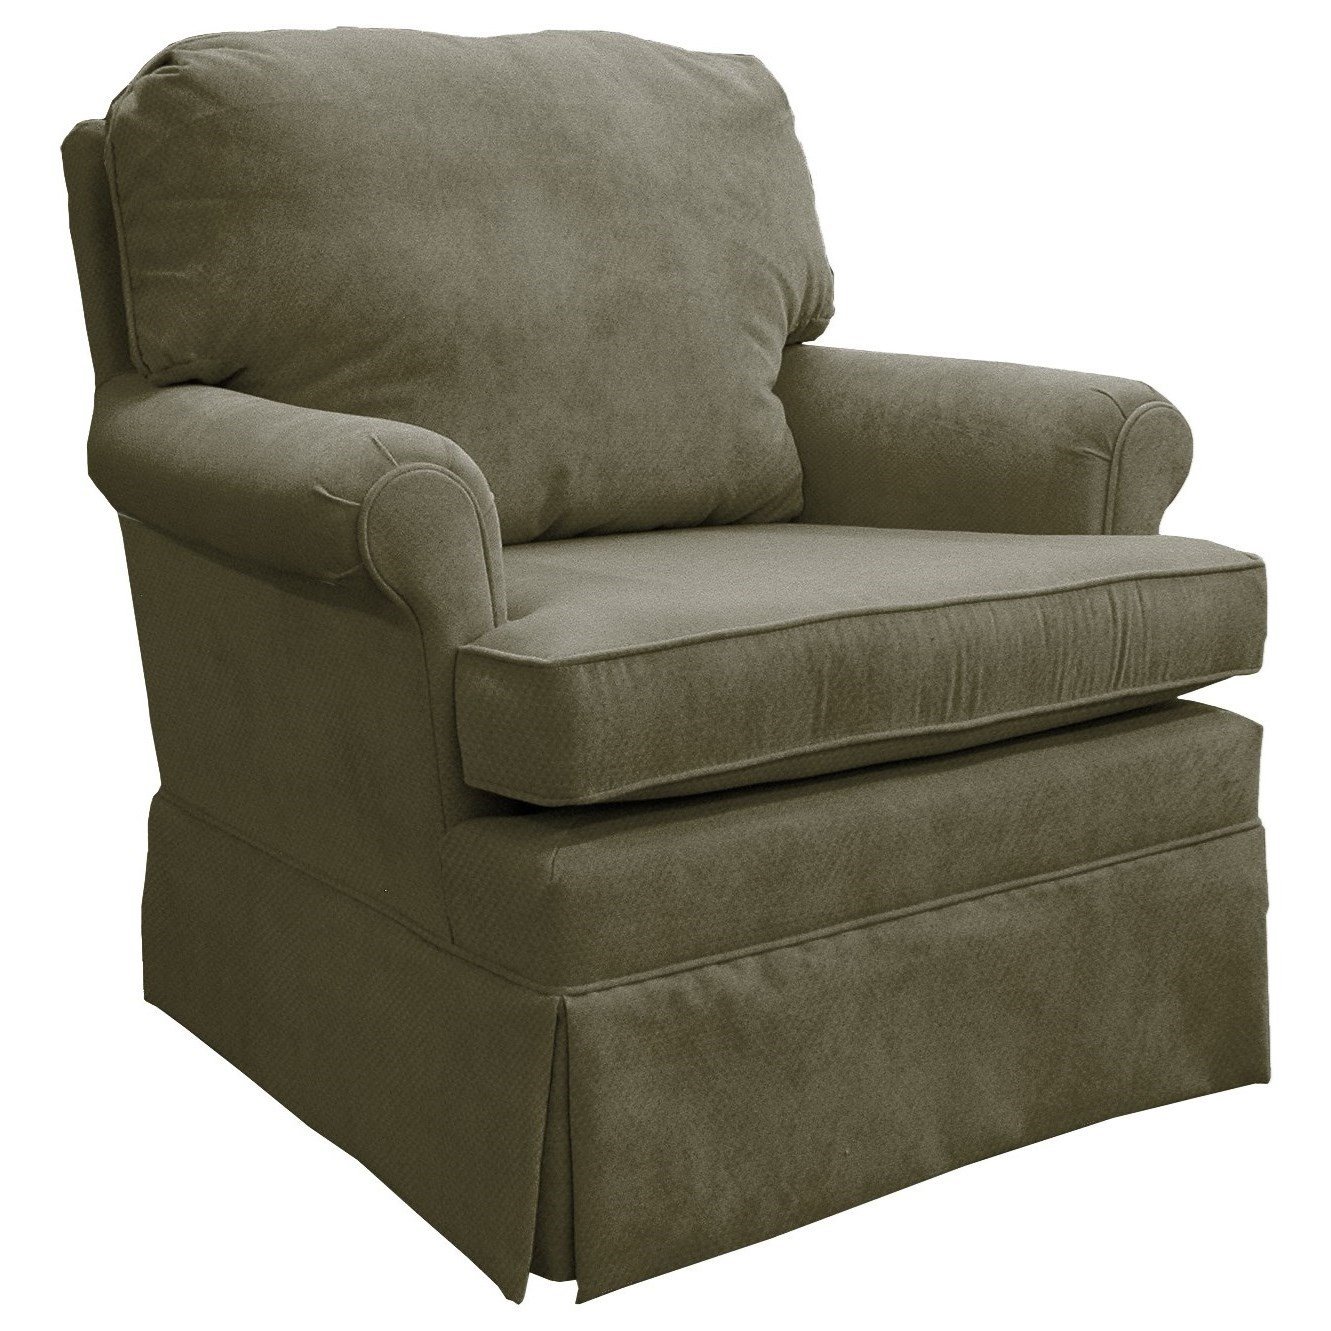 Best Home Furnishings Patoka Swivel Rocking Club Chair  - Item Number: 2619-20191